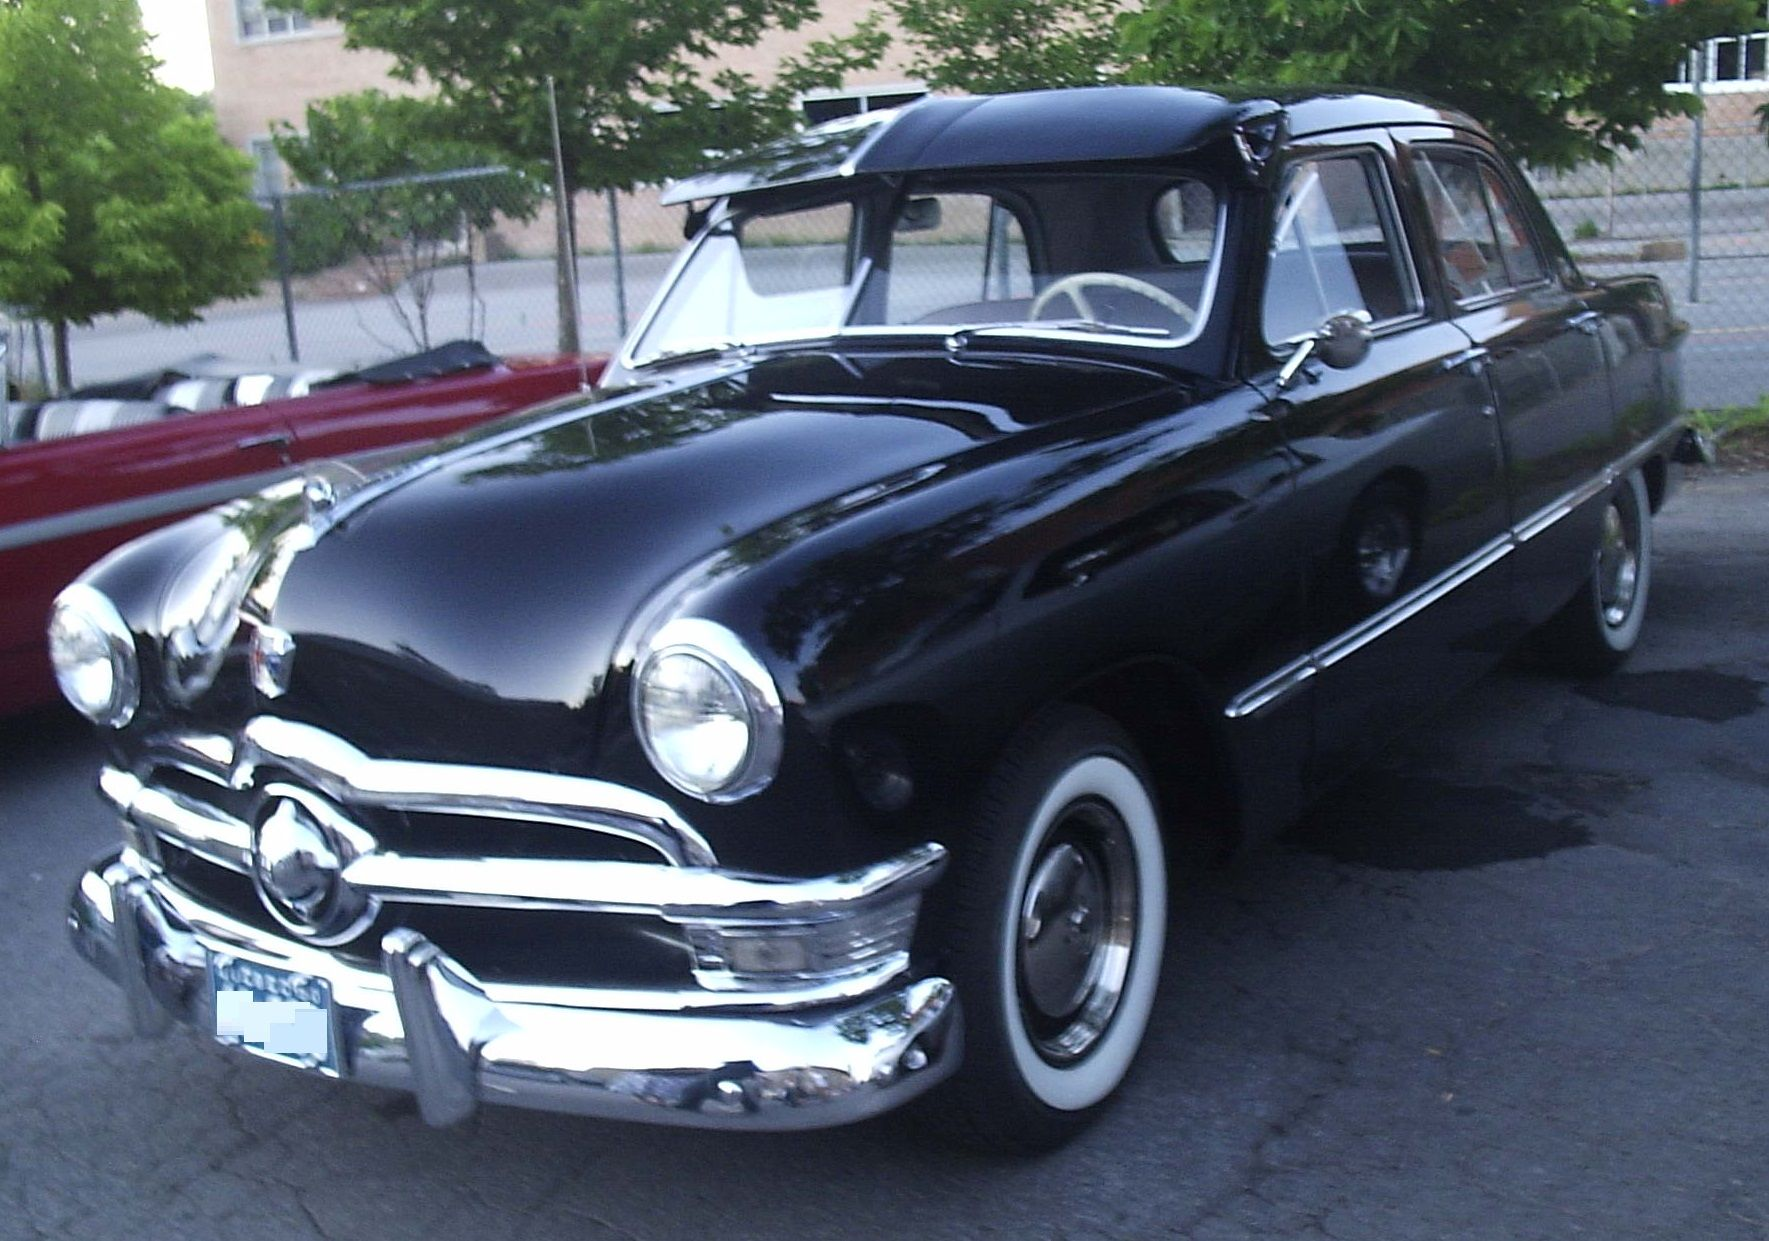 1950 Ford Sedan. : ford car 1950 - markmcfarlin.com